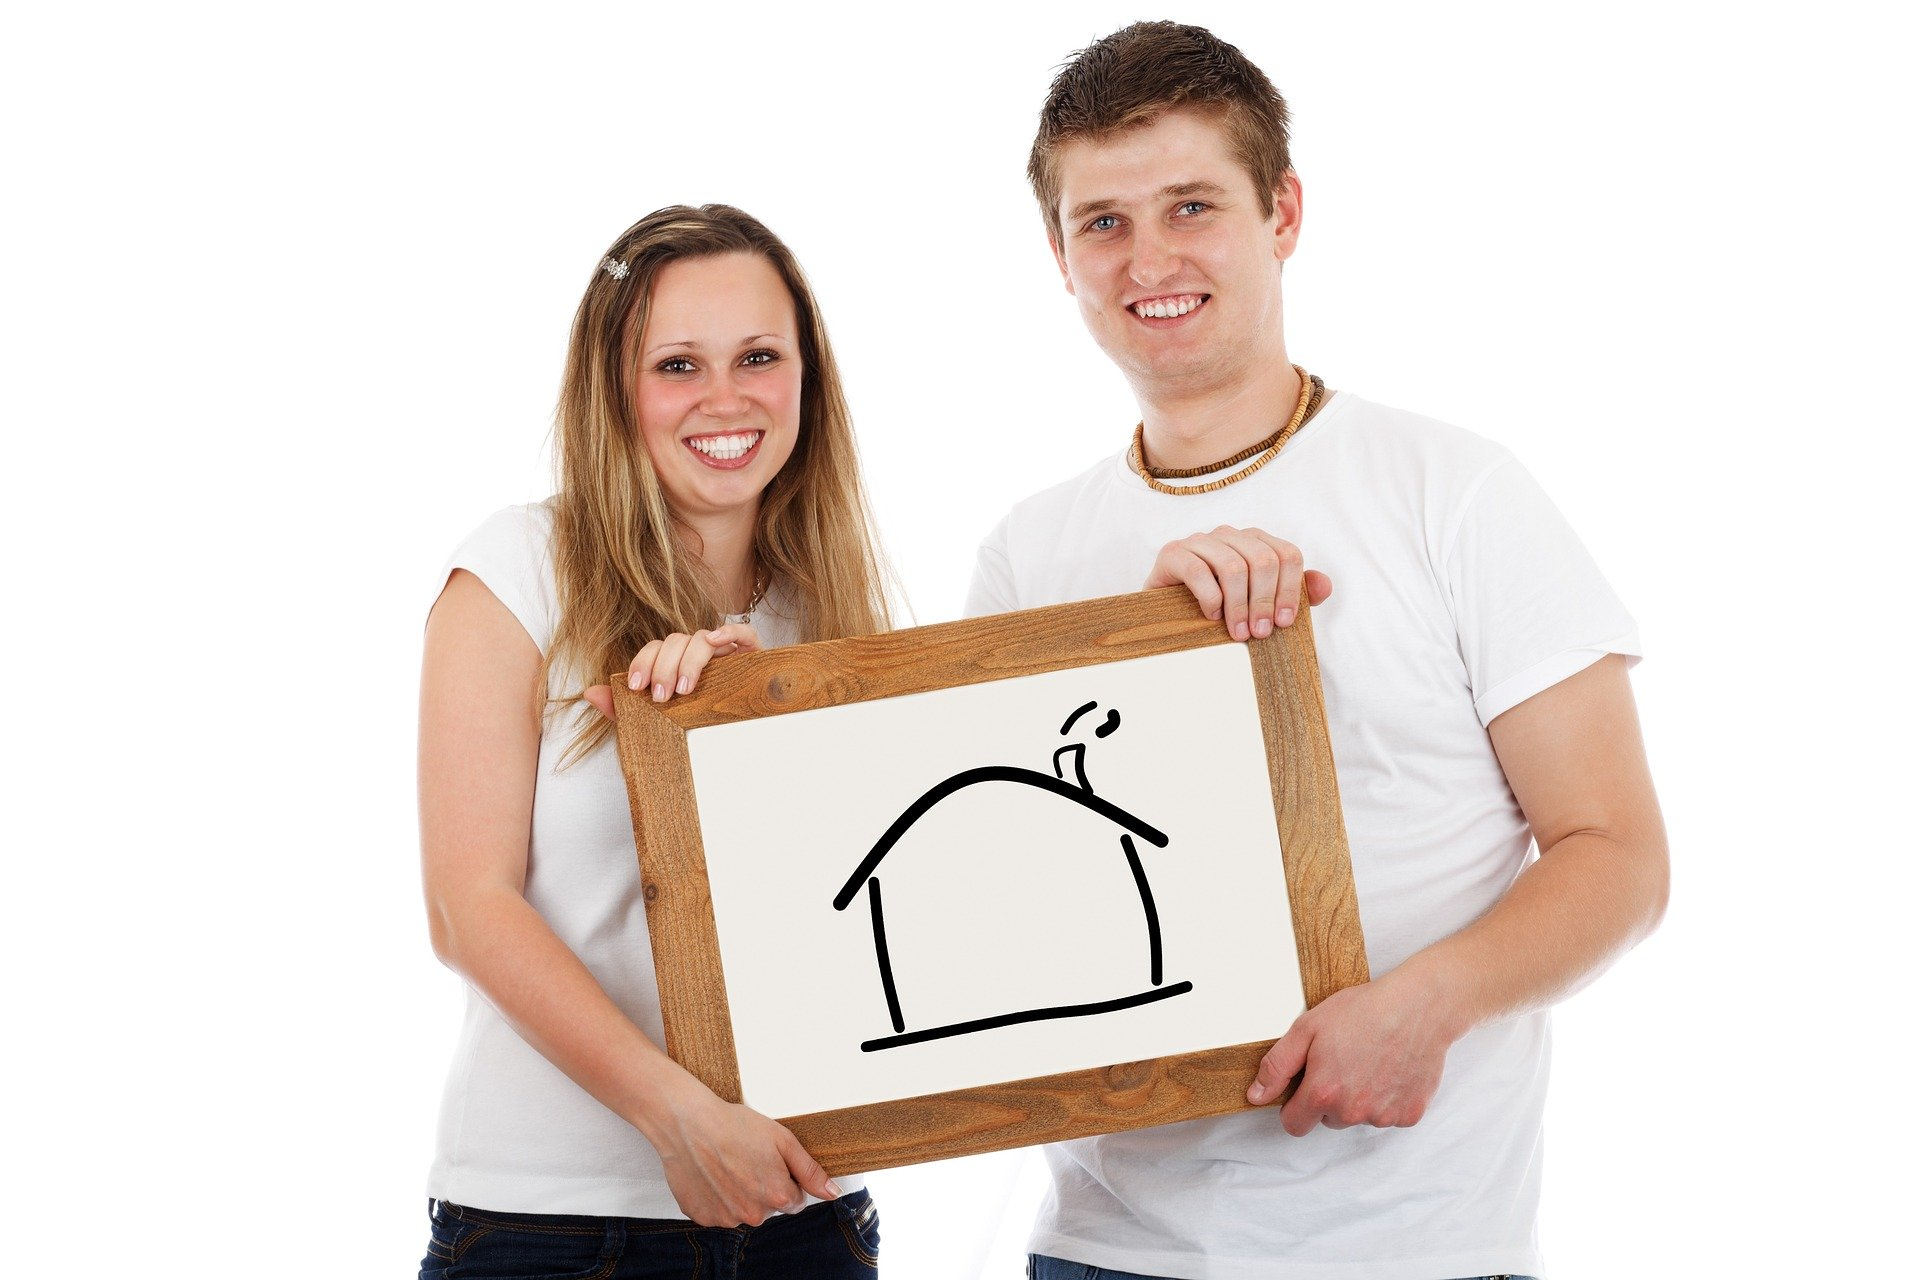 Young man and woman in white holding a drawing of a home